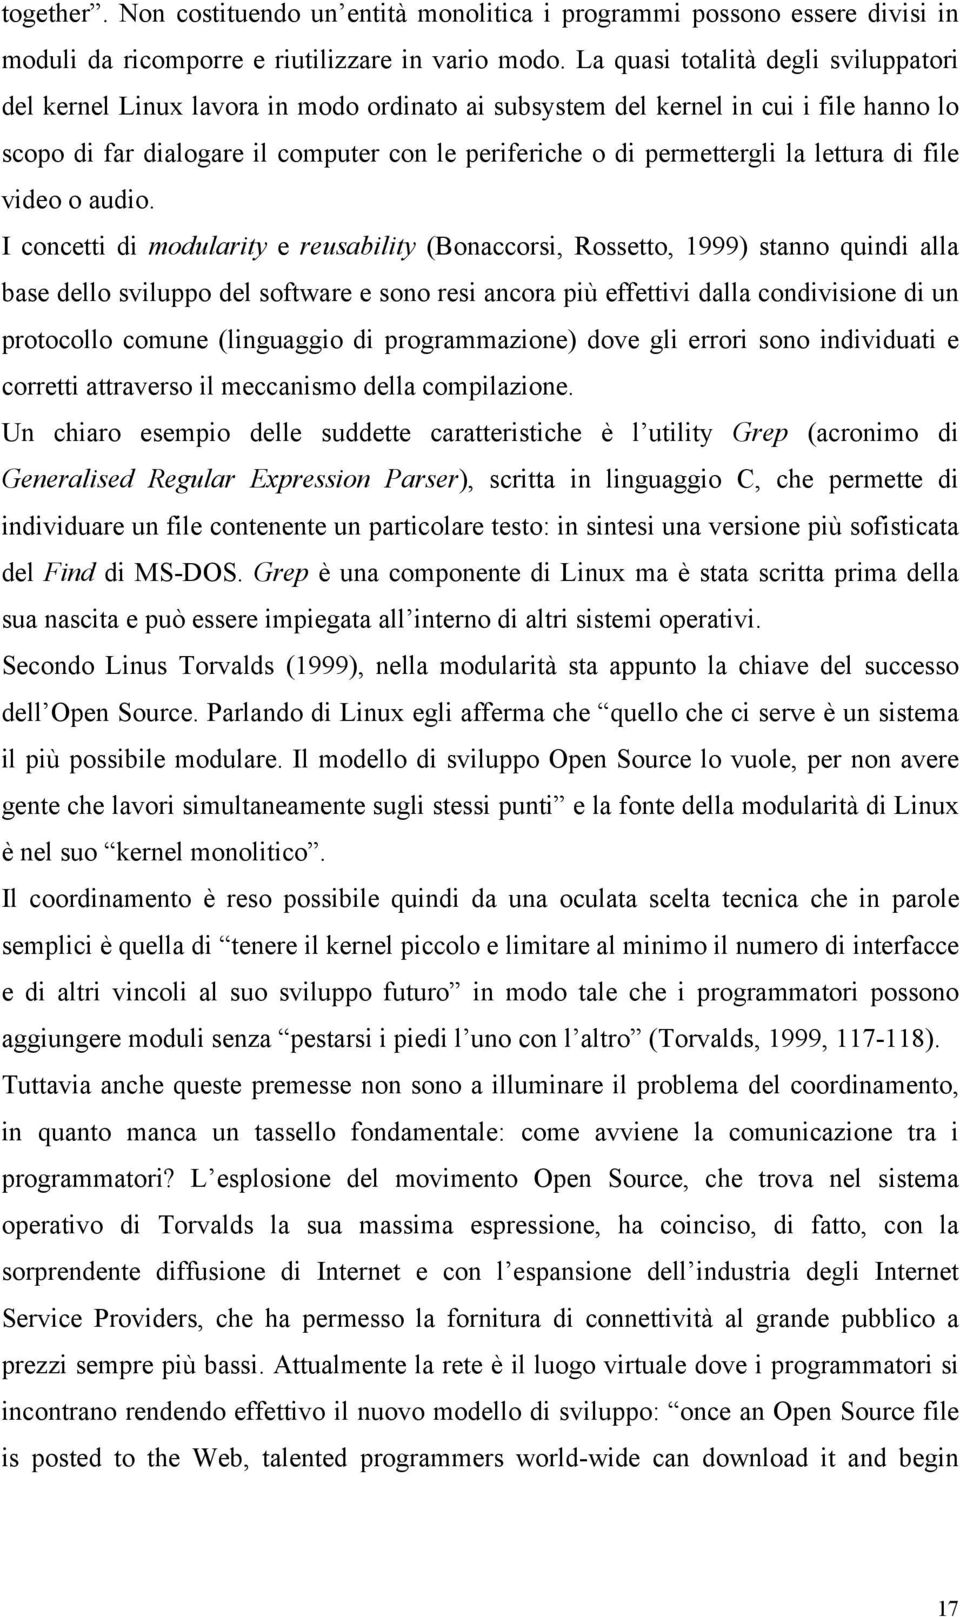 lettura di file video o audio.